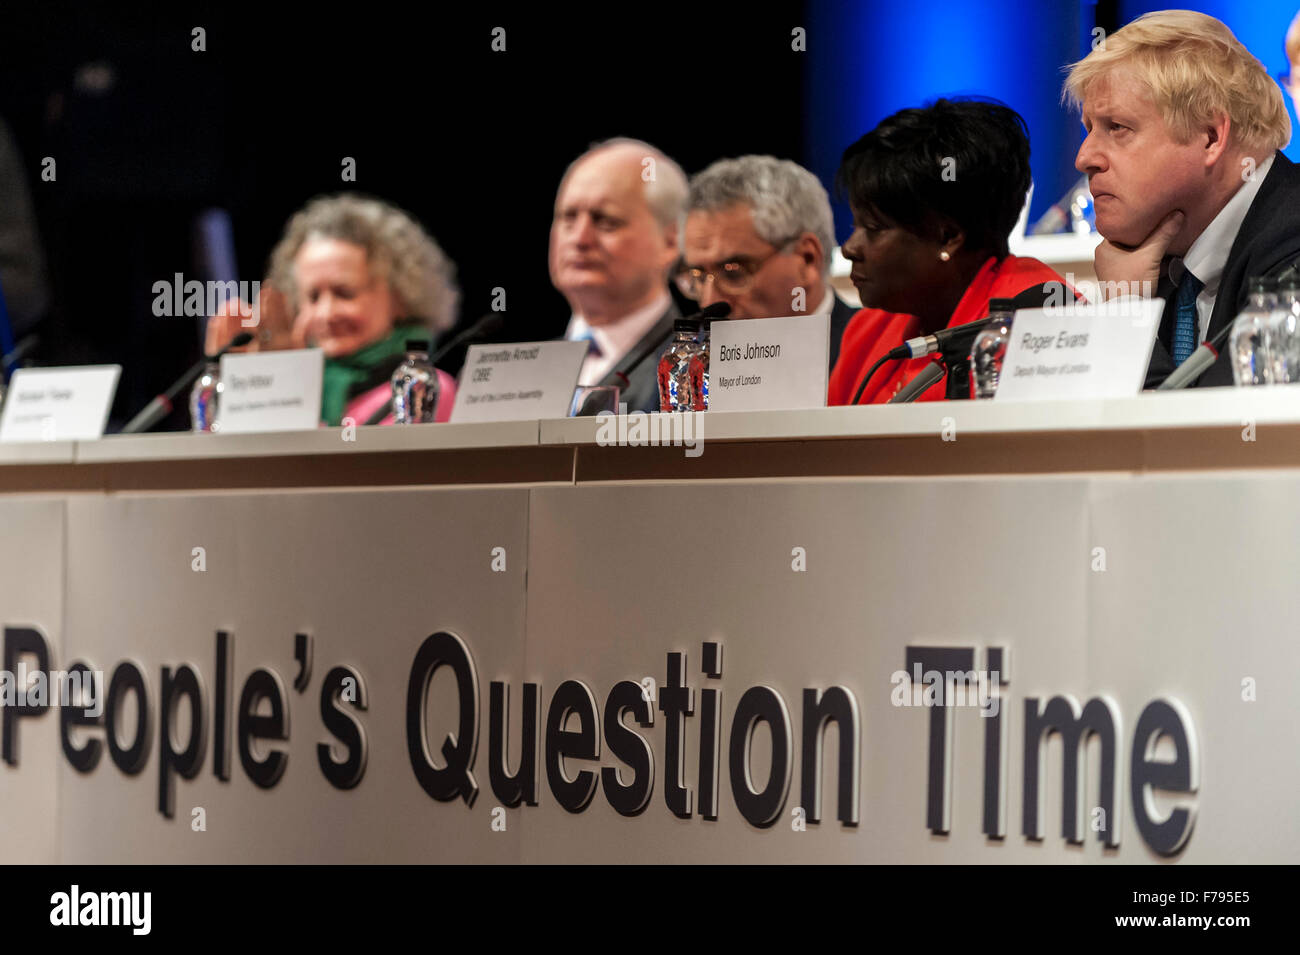 London, UK.  26 November 2015.  Mayor of London, Boris Johnson, attends People's Question Time, at the Beck - Stock Image